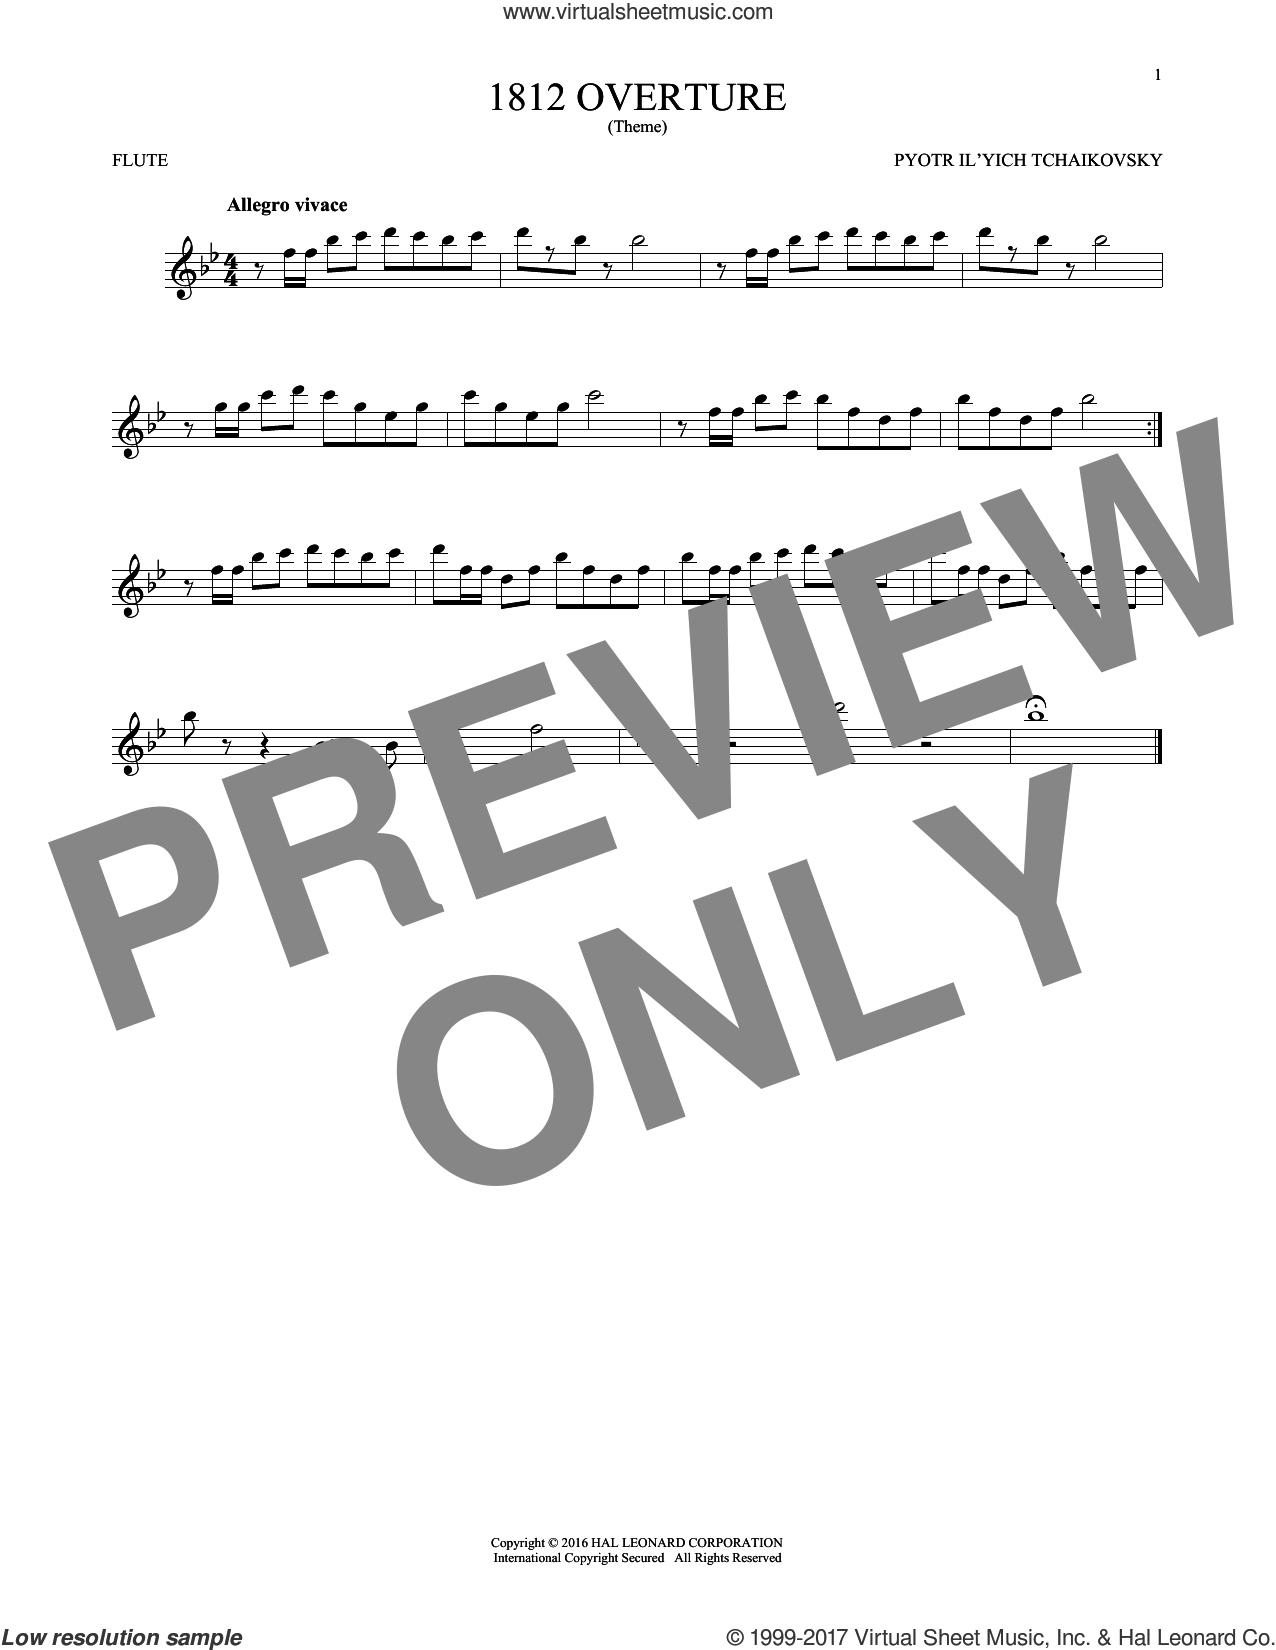 1812 Overture sheet music for flute solo by Pyotr Ilyich Tchaikovsky, classical score, intermediate skill level